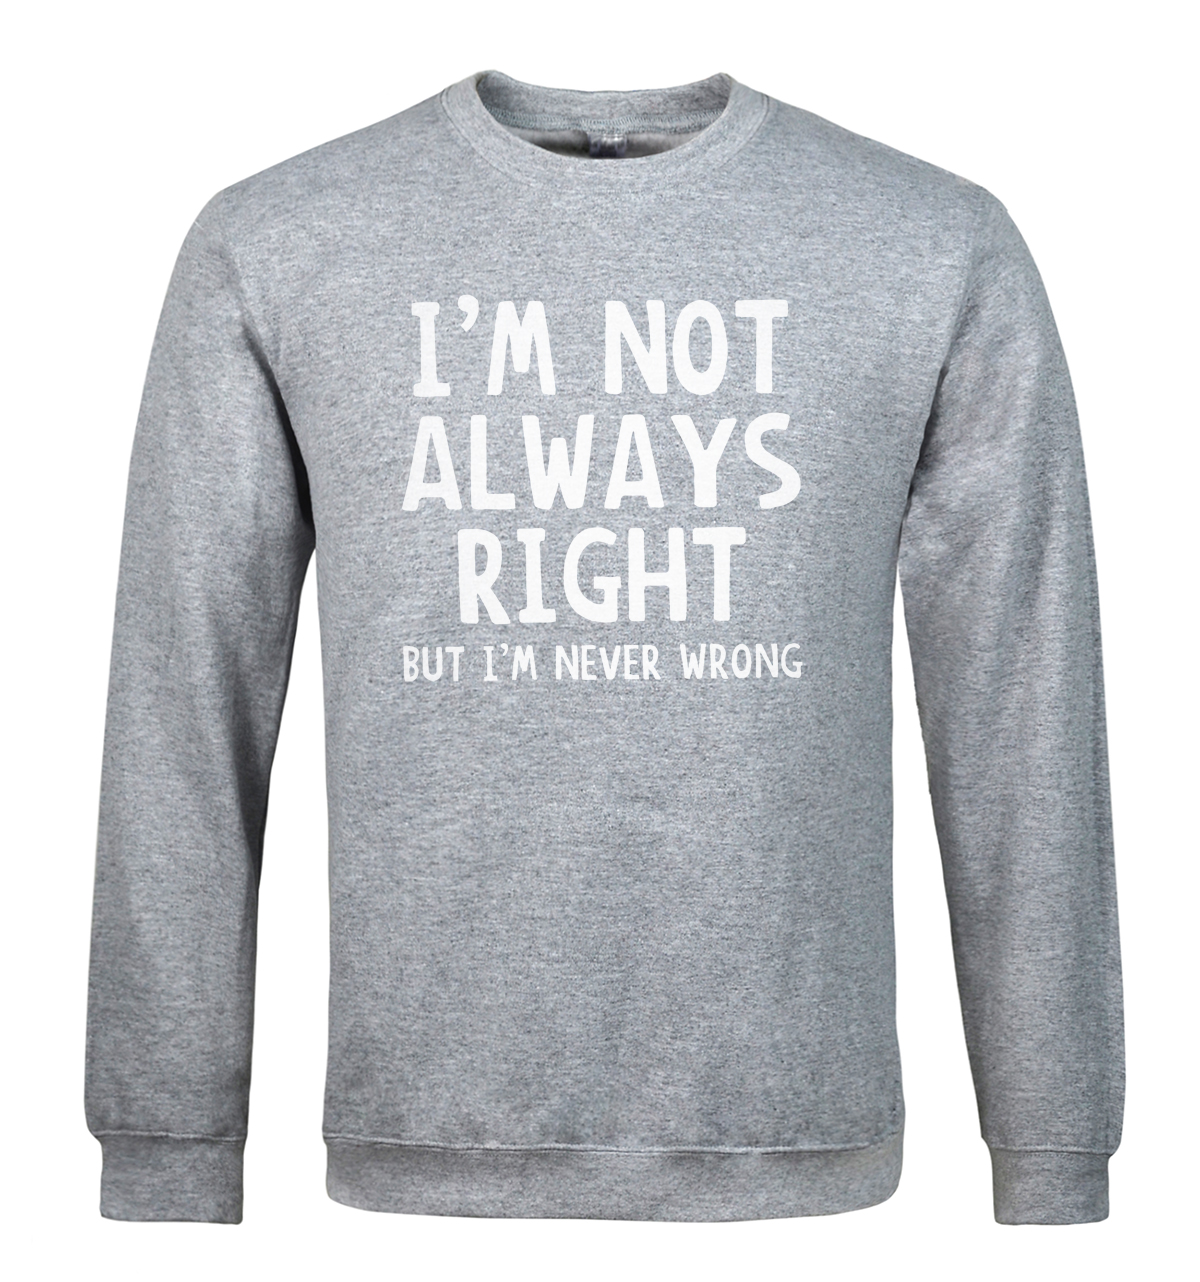 I'M NOT ALWAYS RIGHT print 2019 men's sweatshirt funny fashion fleece hoodies sportsman wear harajuku brand-clothing k-pop hoody